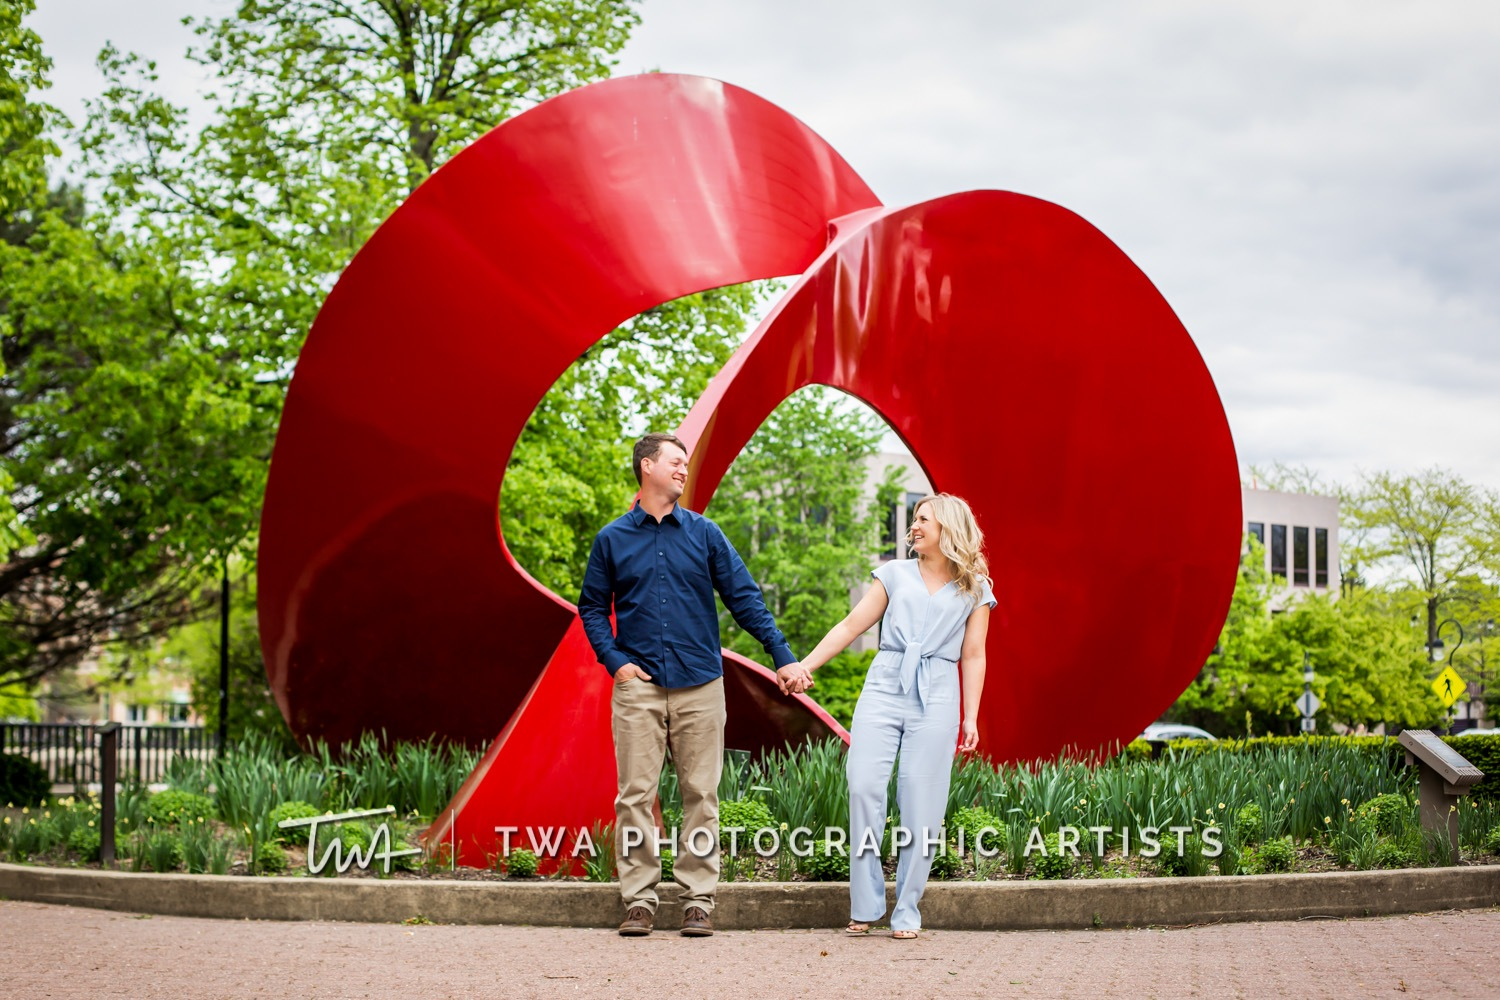 Chicago-Wedding-Photographer-TWA-Photographic-Artists-Naperville-Riverwalk_Fletcher_McDonough_MJ-028